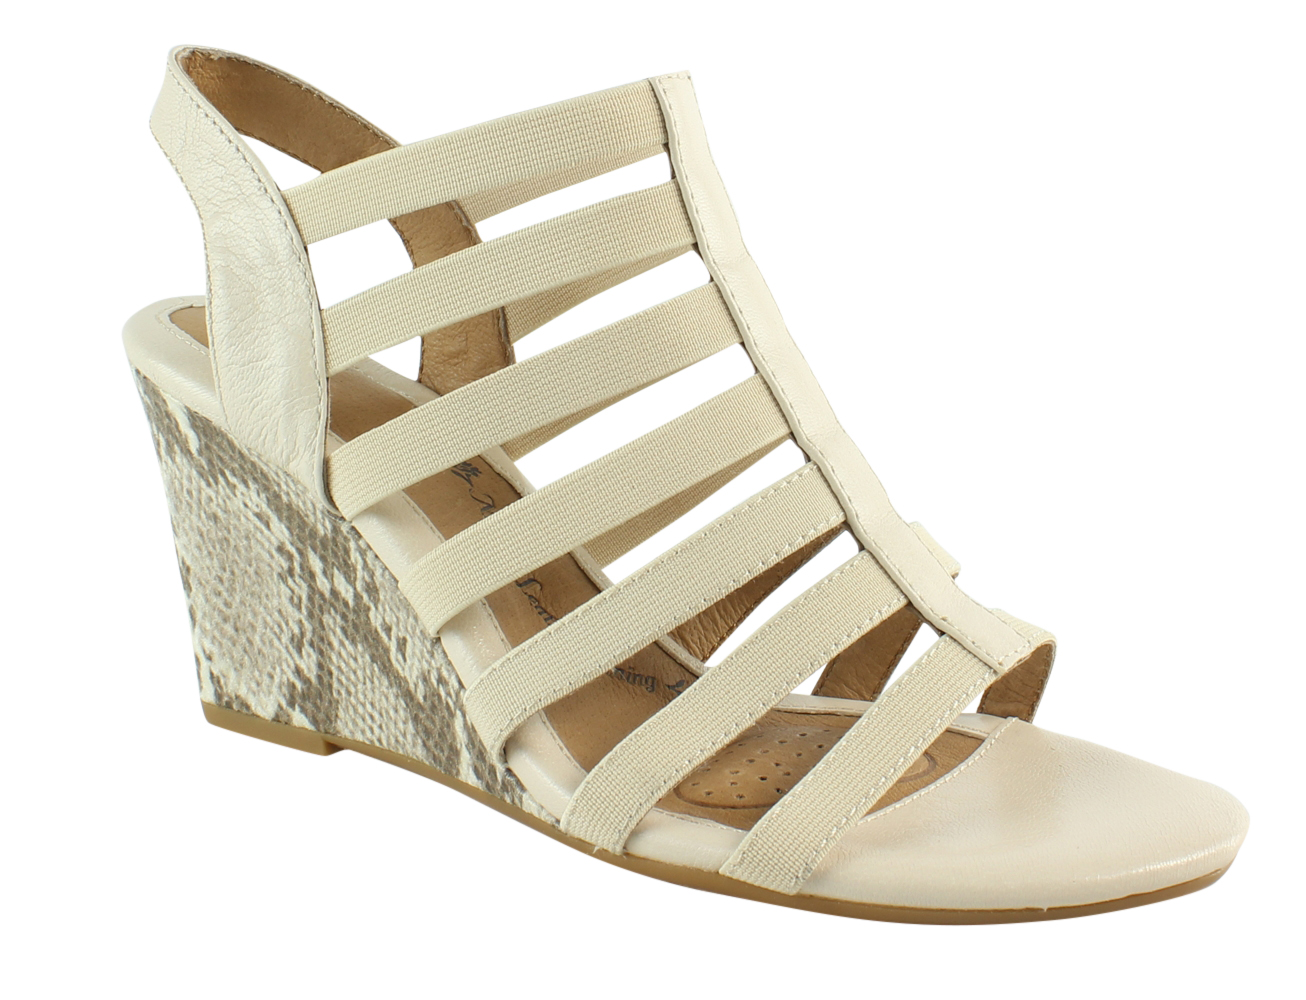 New Sofft Womens Beige Sandals Size 7.5 by Sofft